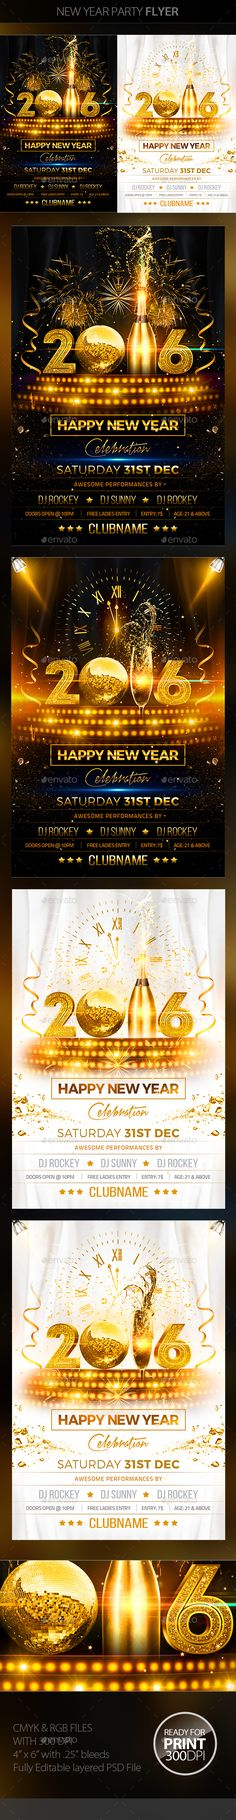 New Year Party Flyer  Flyer Design Templates Party Flyer And